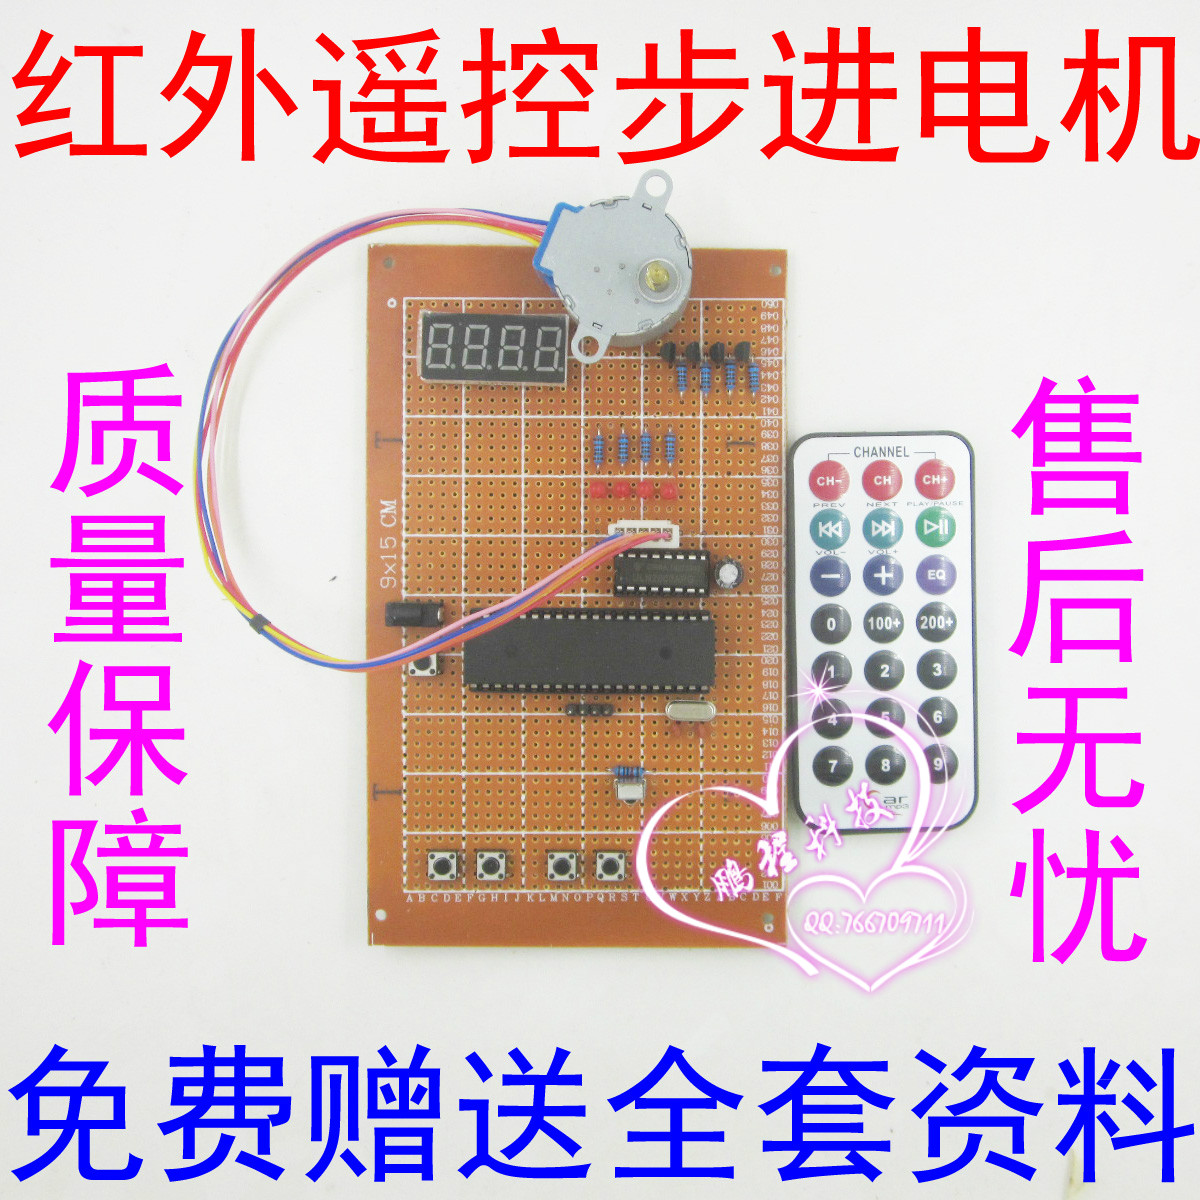 Design of Infrared Remote Stepping Motor Speed Regulation System Based on 51 Single Chip Microcomputer